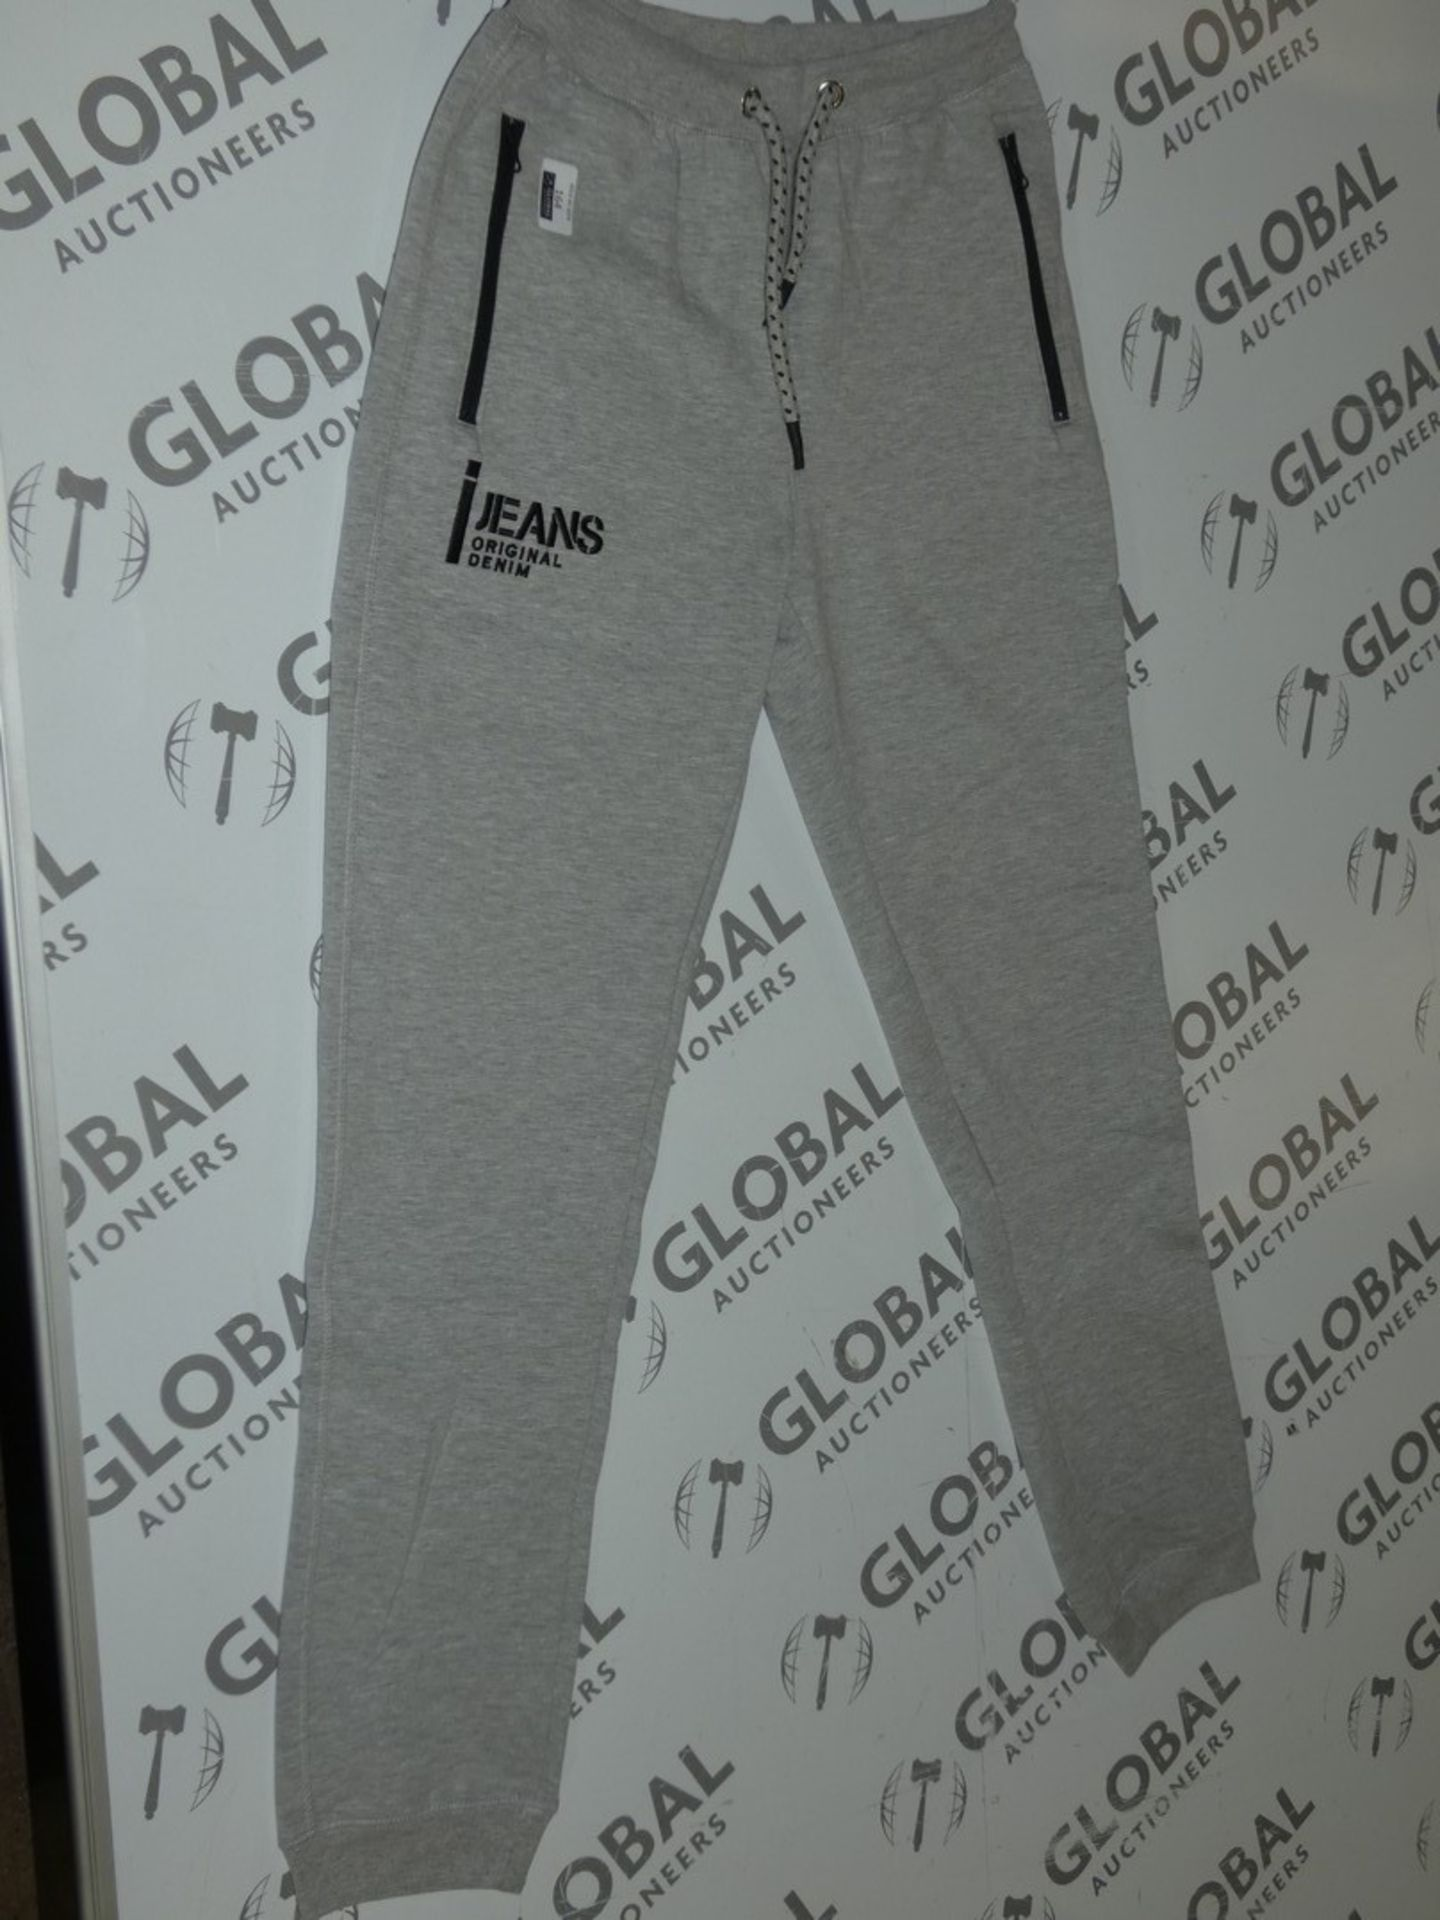 Lot 164 - Assorted Brand New Pairs Of Ijeans Original Denim Grey Lounging Pants In Assorted Sizes RRP £25 A